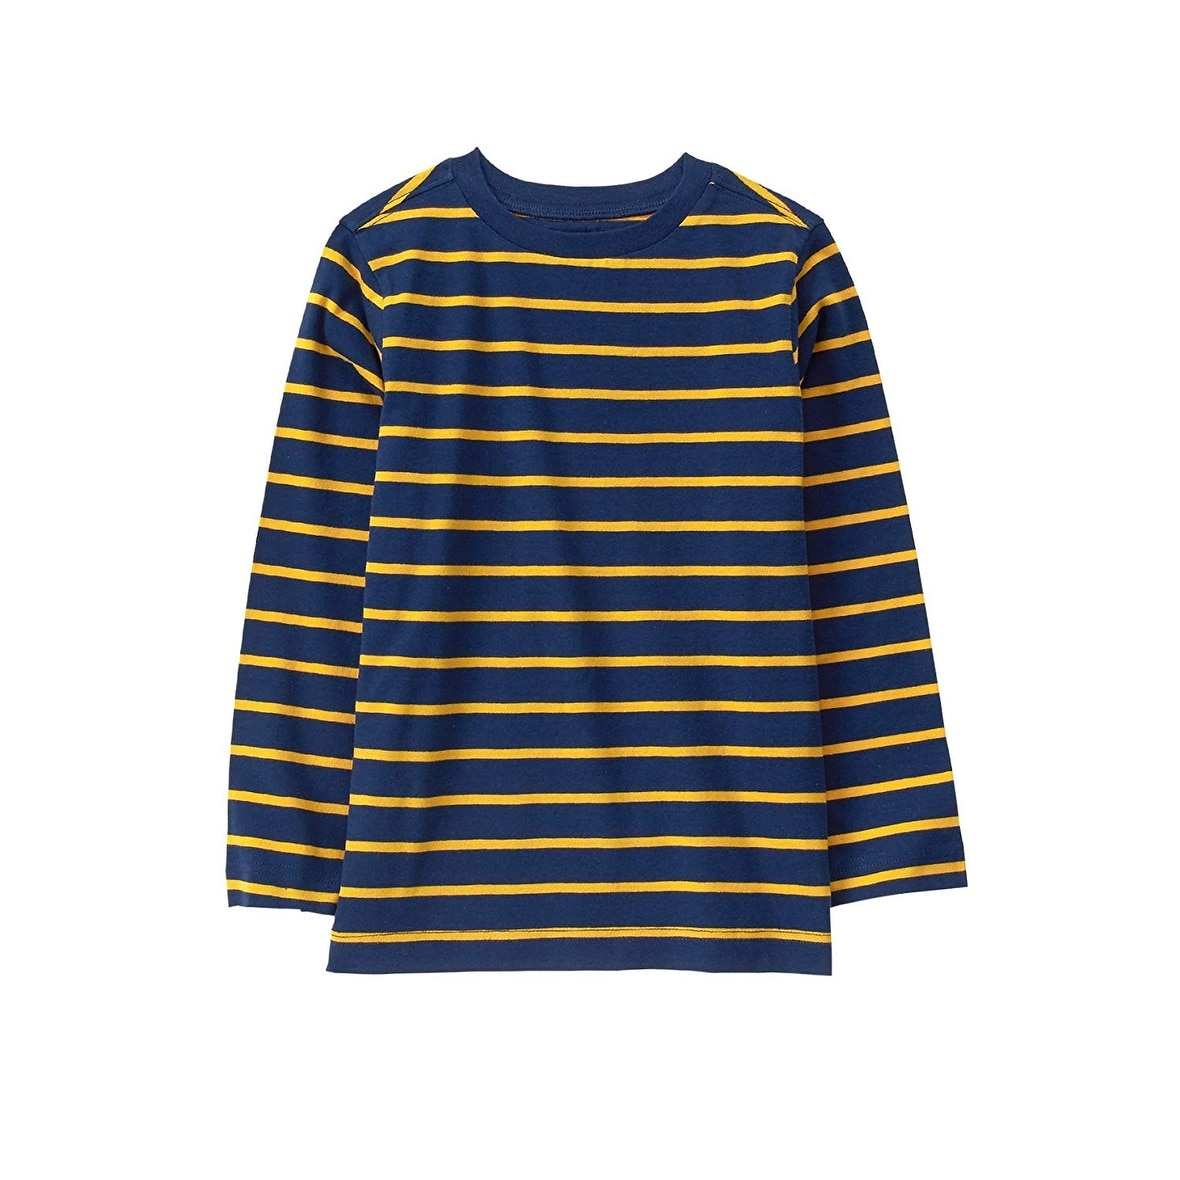 Crazy 8 Boys Long-Sleeve Raglan Top